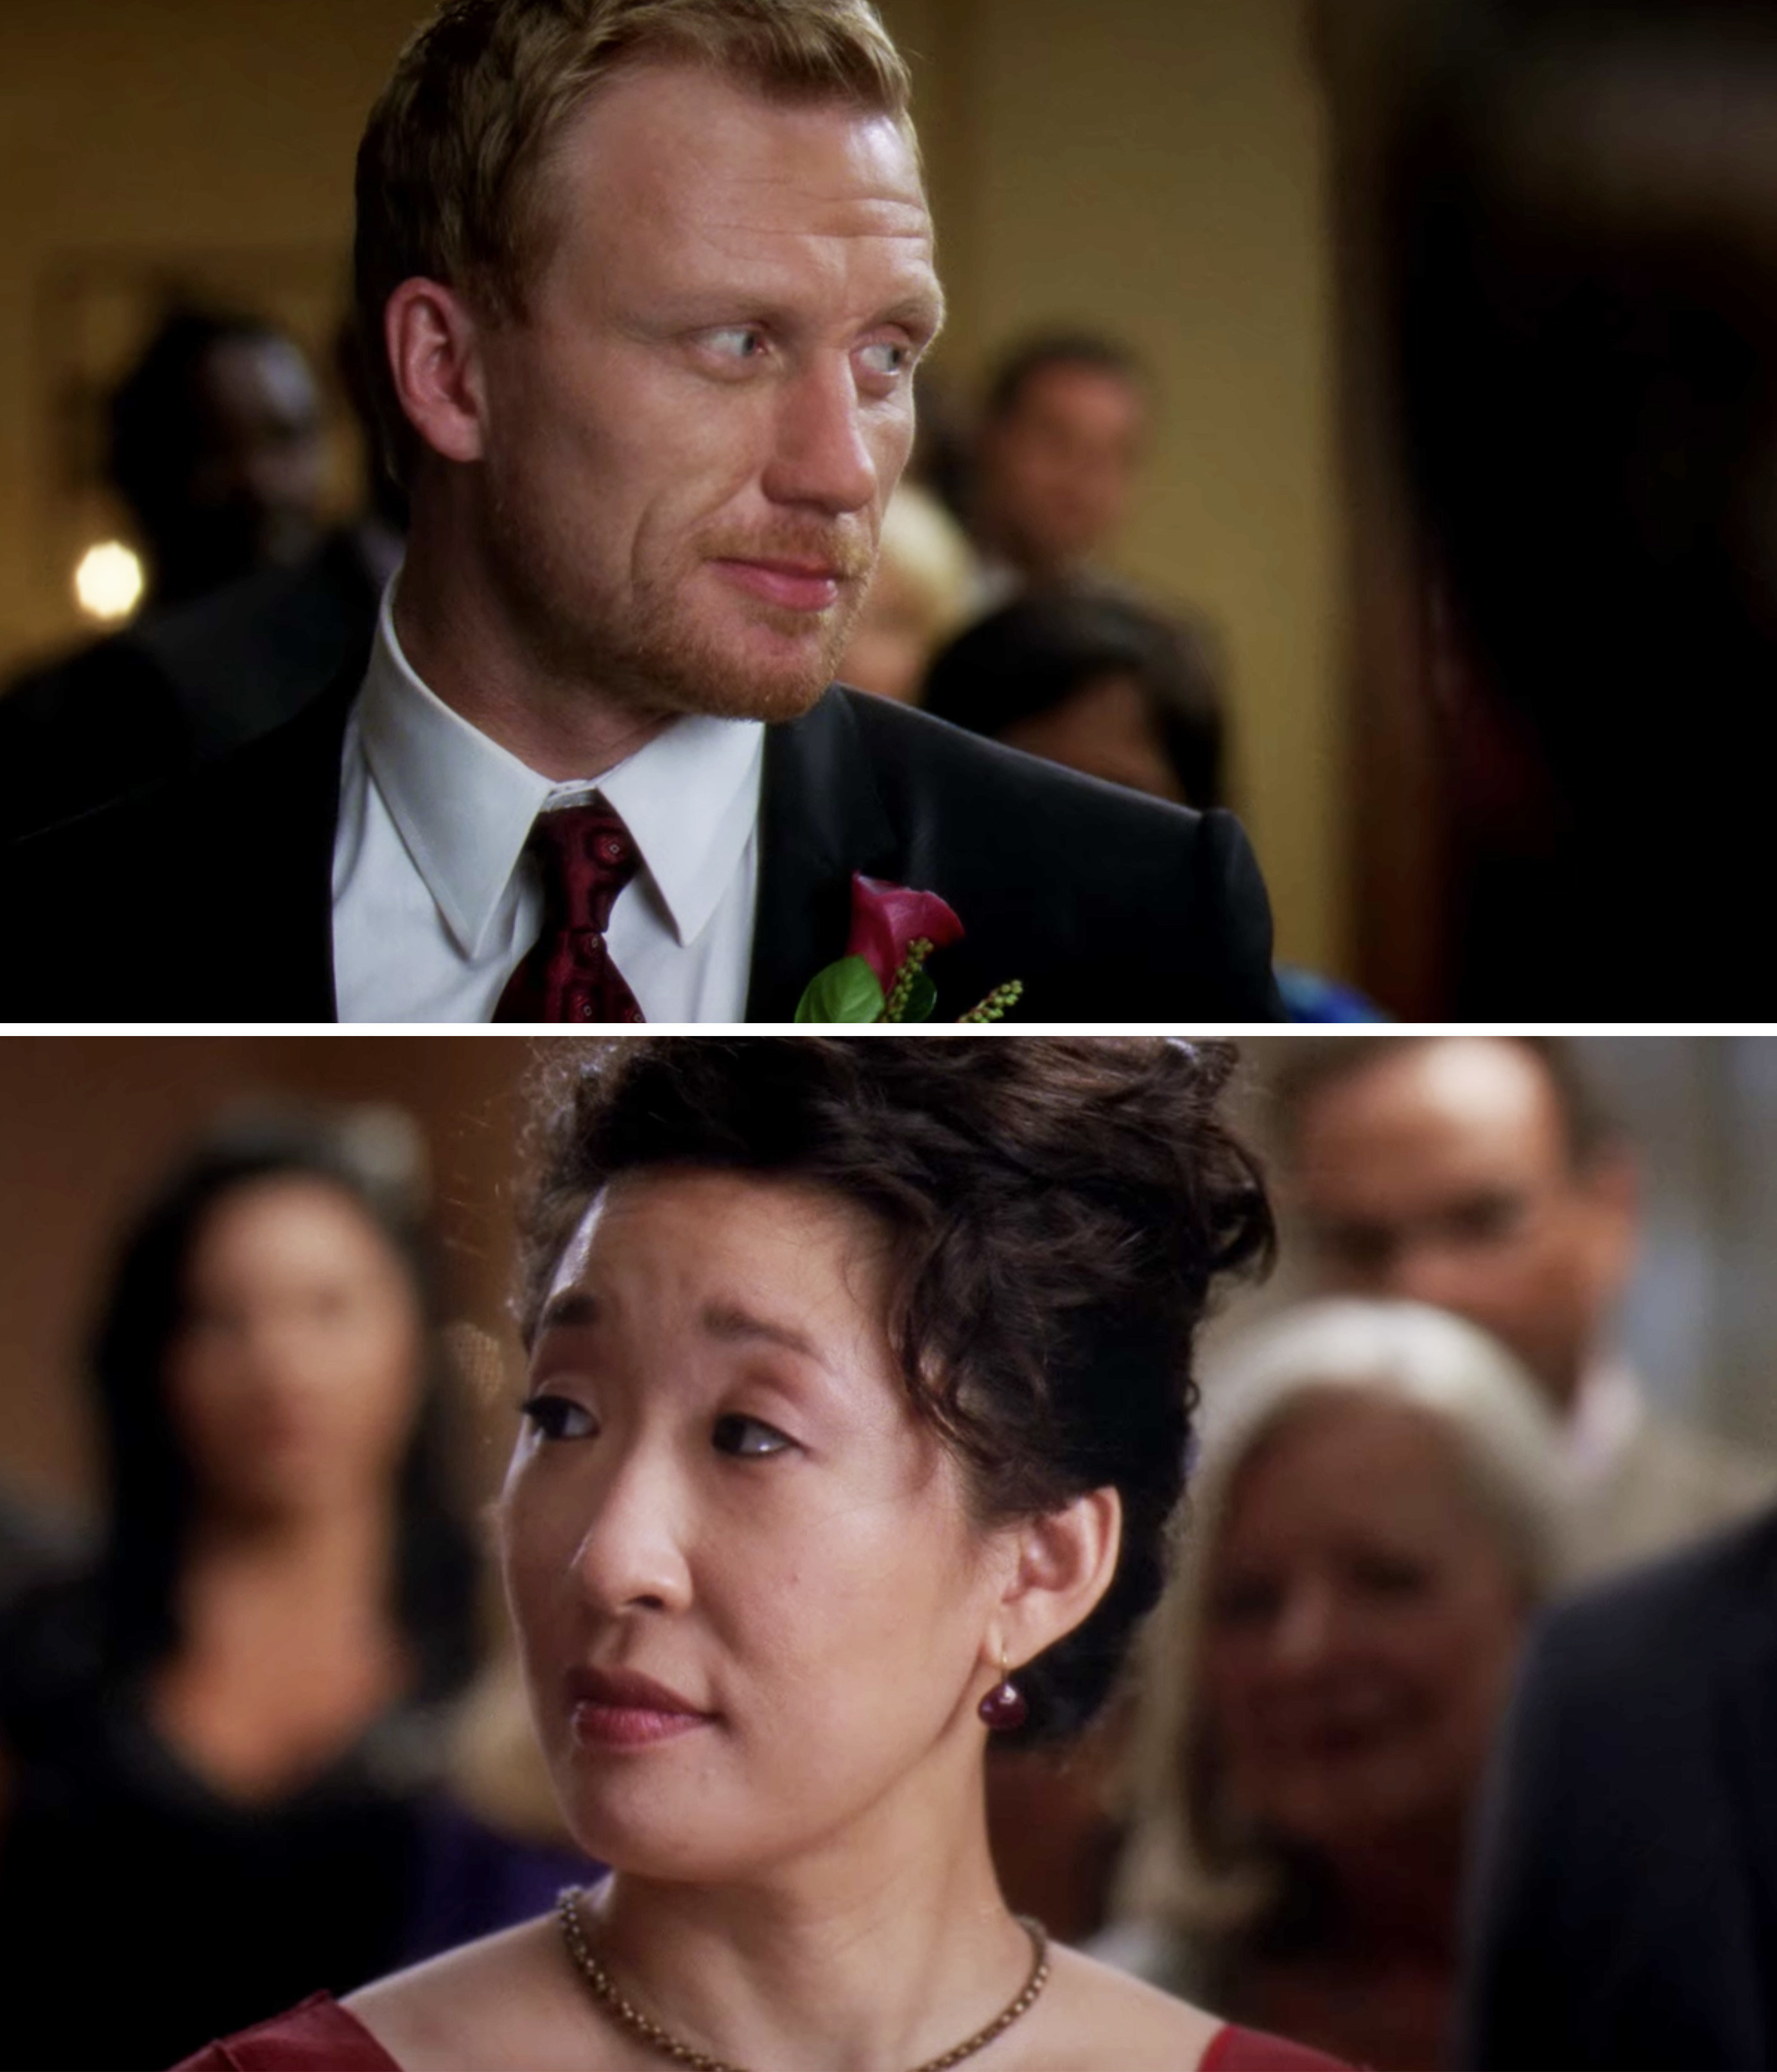 Cristina and Owen looking at each other on their wedding day